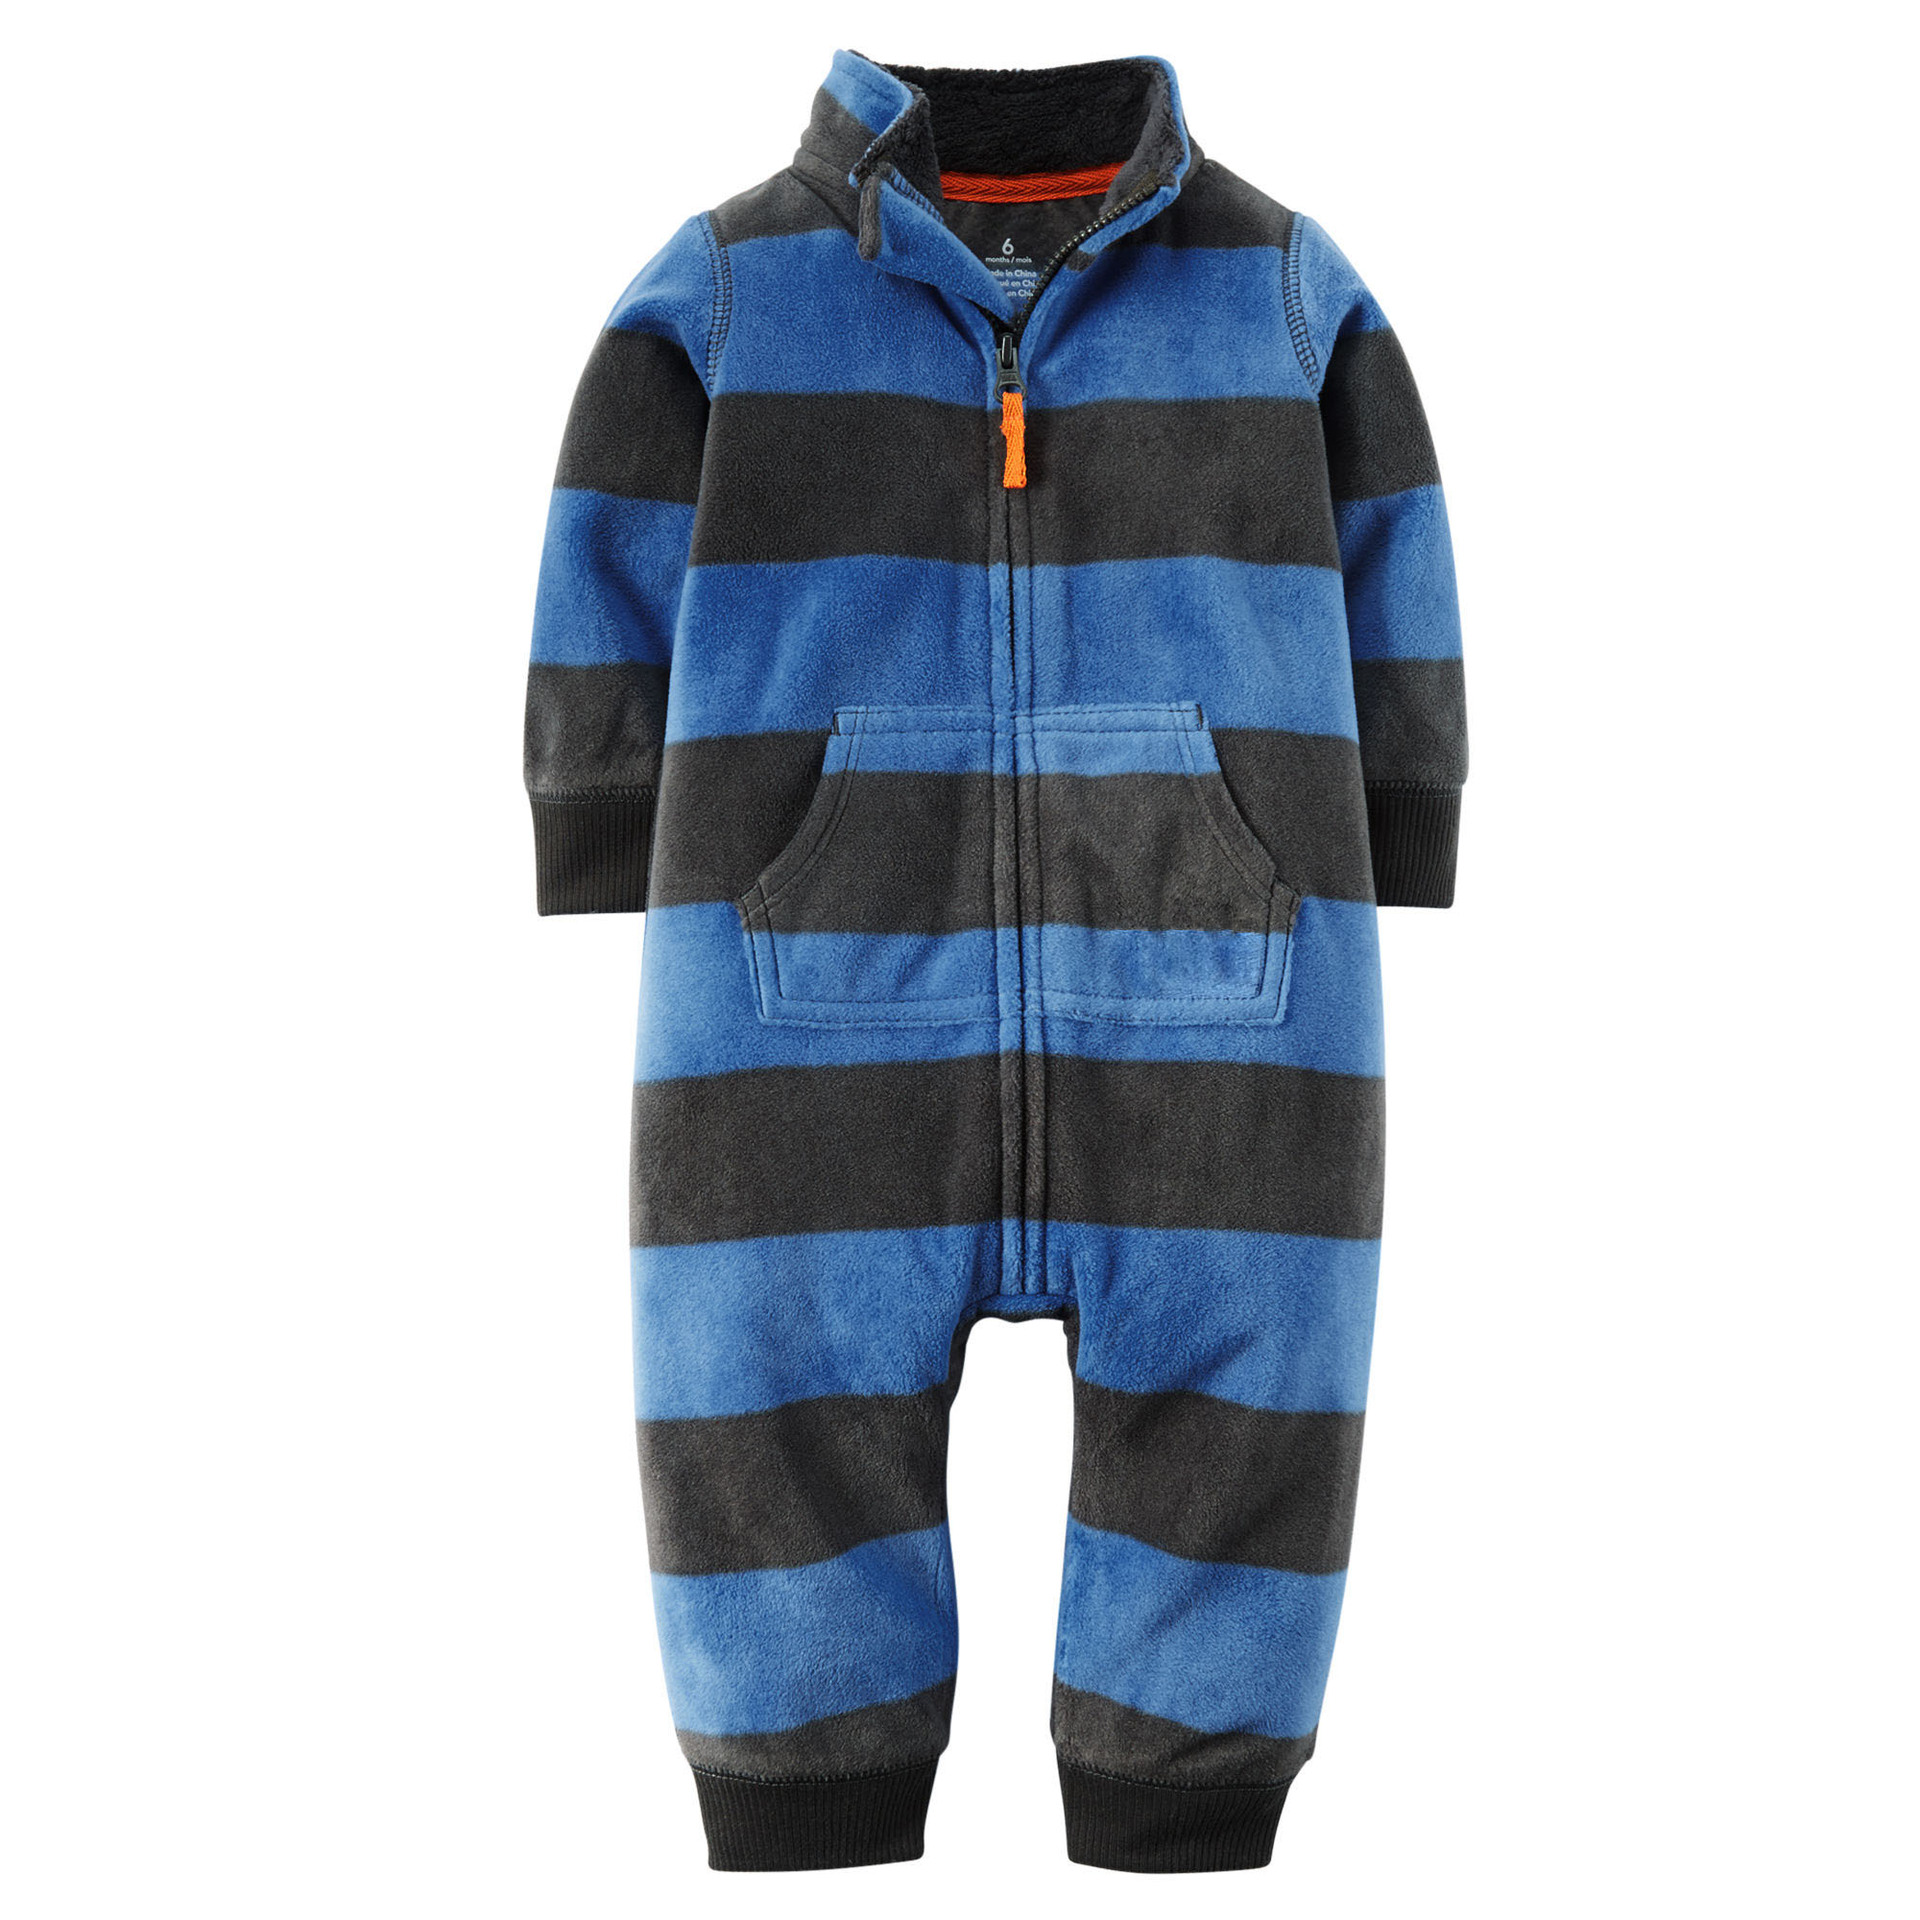 2017 Baby clothes bebes jumpsuit collar fleece newborn pajamas infants baby boys clothes toddler boys clothes coveralls outwear 2017 new fashion cute rompers toddlers unisex baby clothes newborn baby overalls ropa bebes pajamas kids toddler clothes sr133